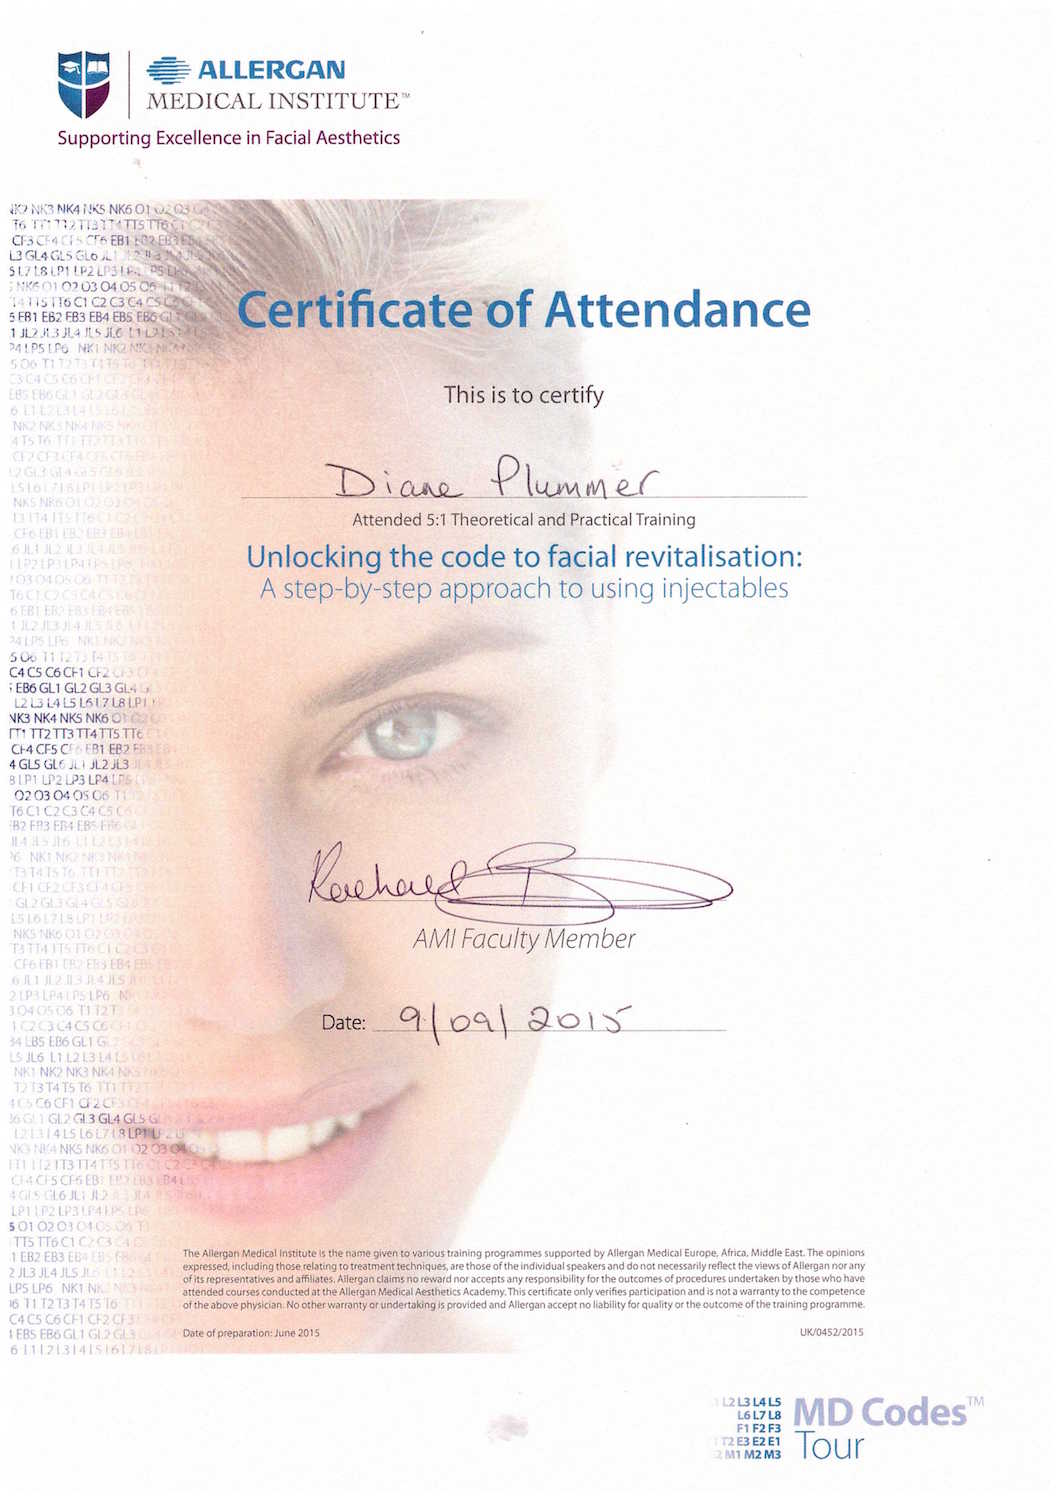 Allergan Medical Institute - unlocking the code to facial revitalisation